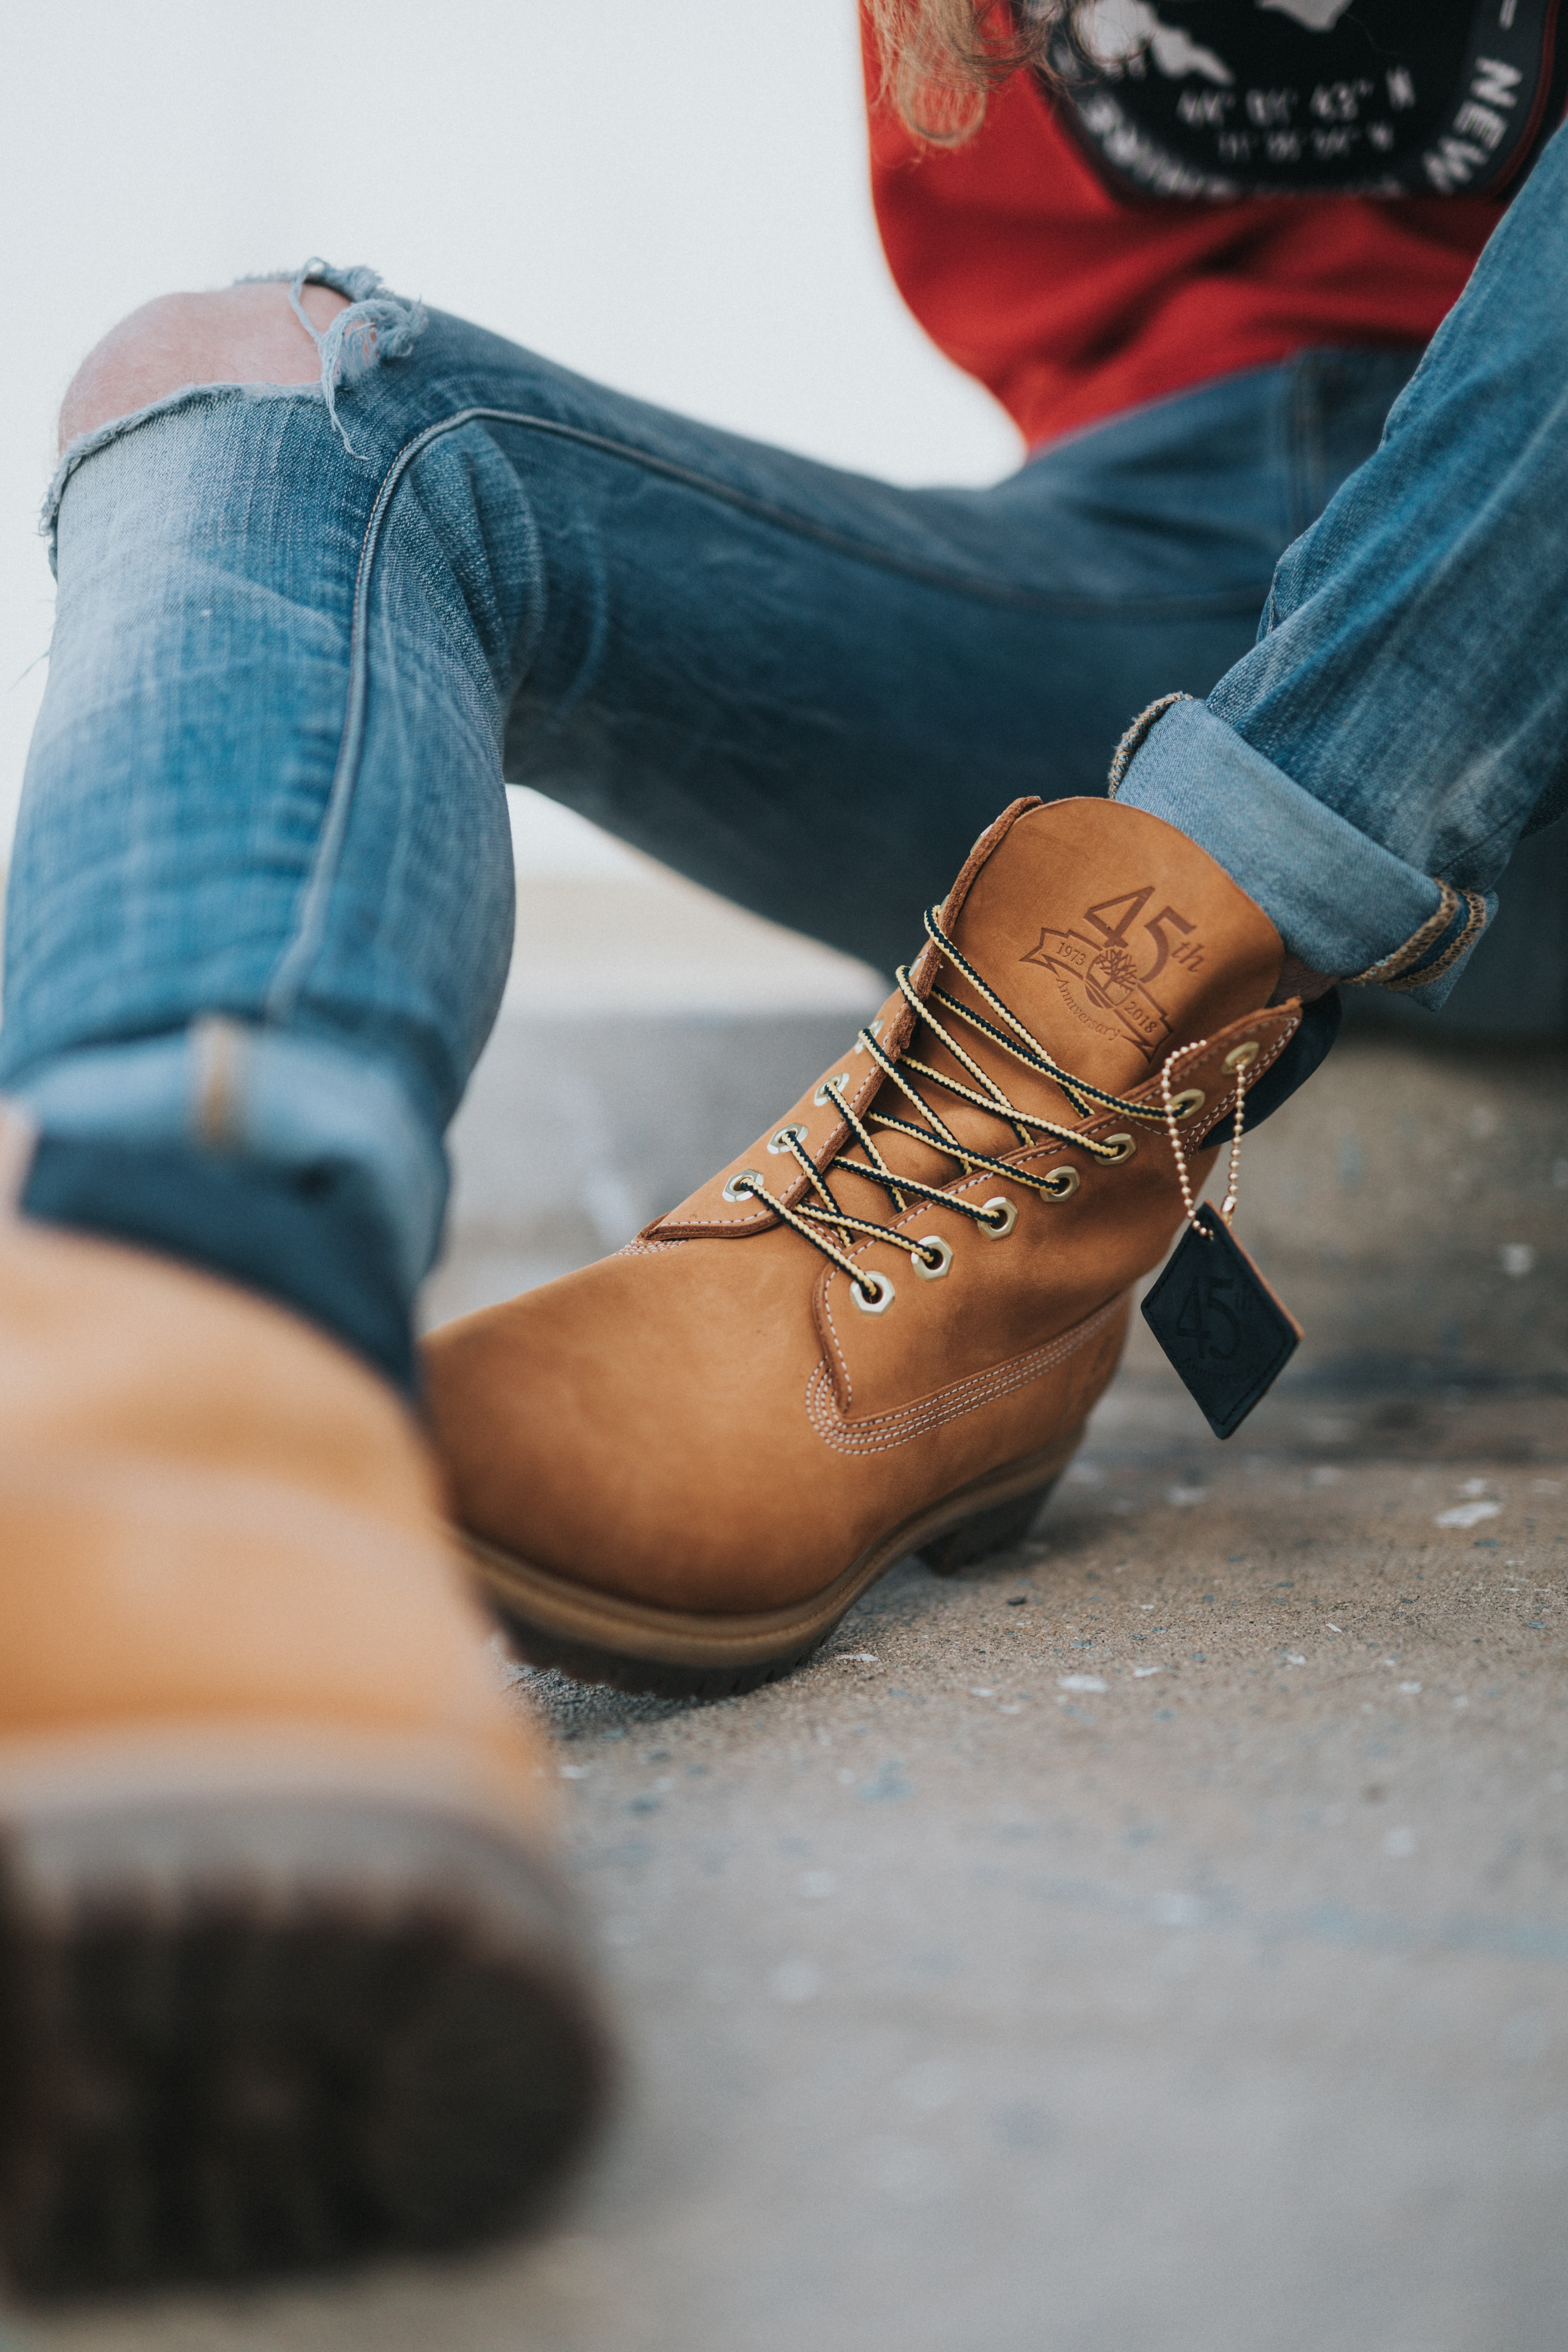 A man sits wearing his Timberland boots